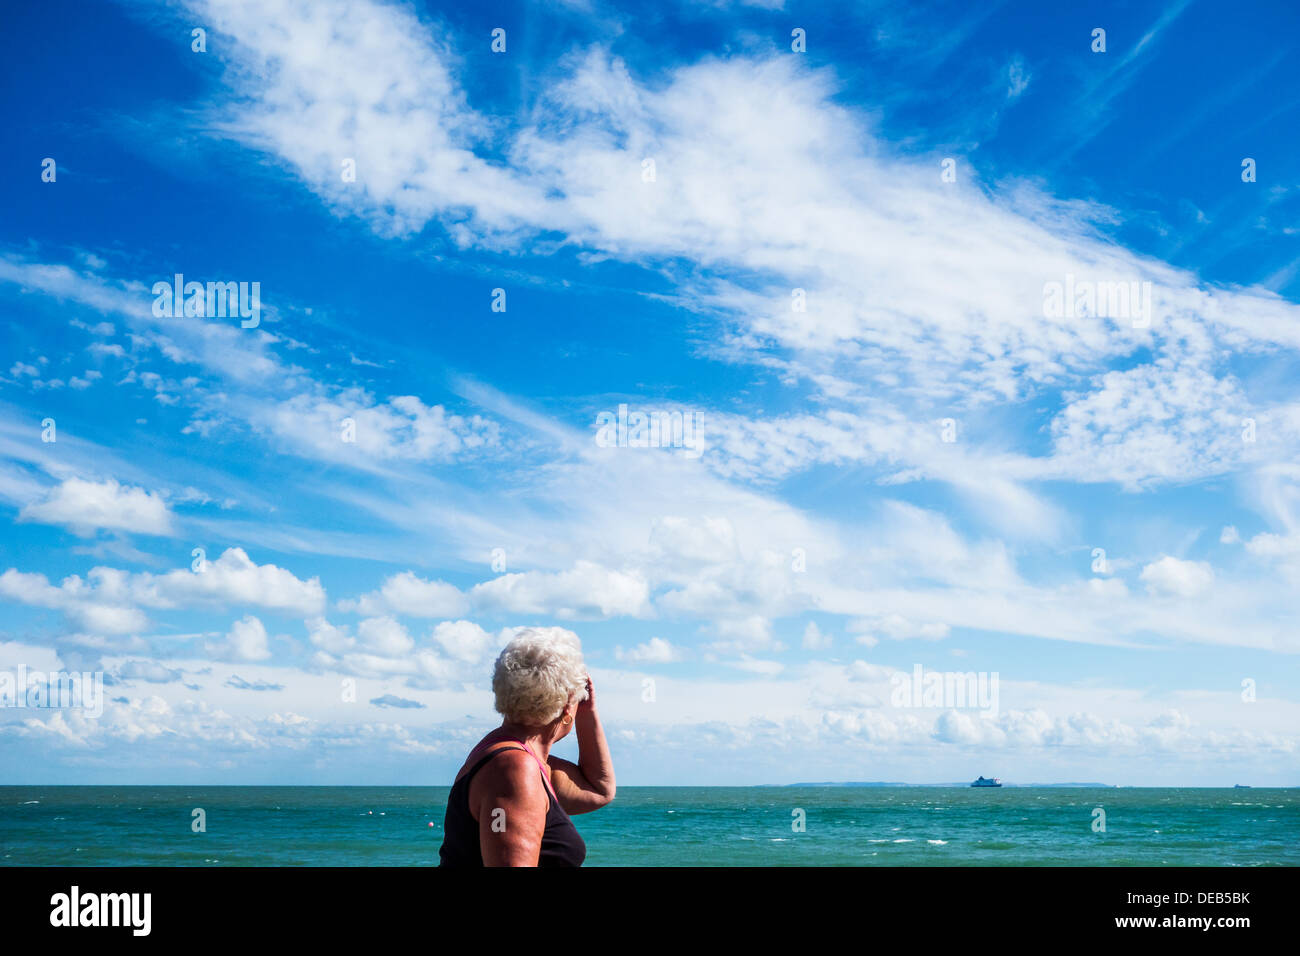 Elderly Pensioner Woman Walking Seaside Skyscape - Stock Image